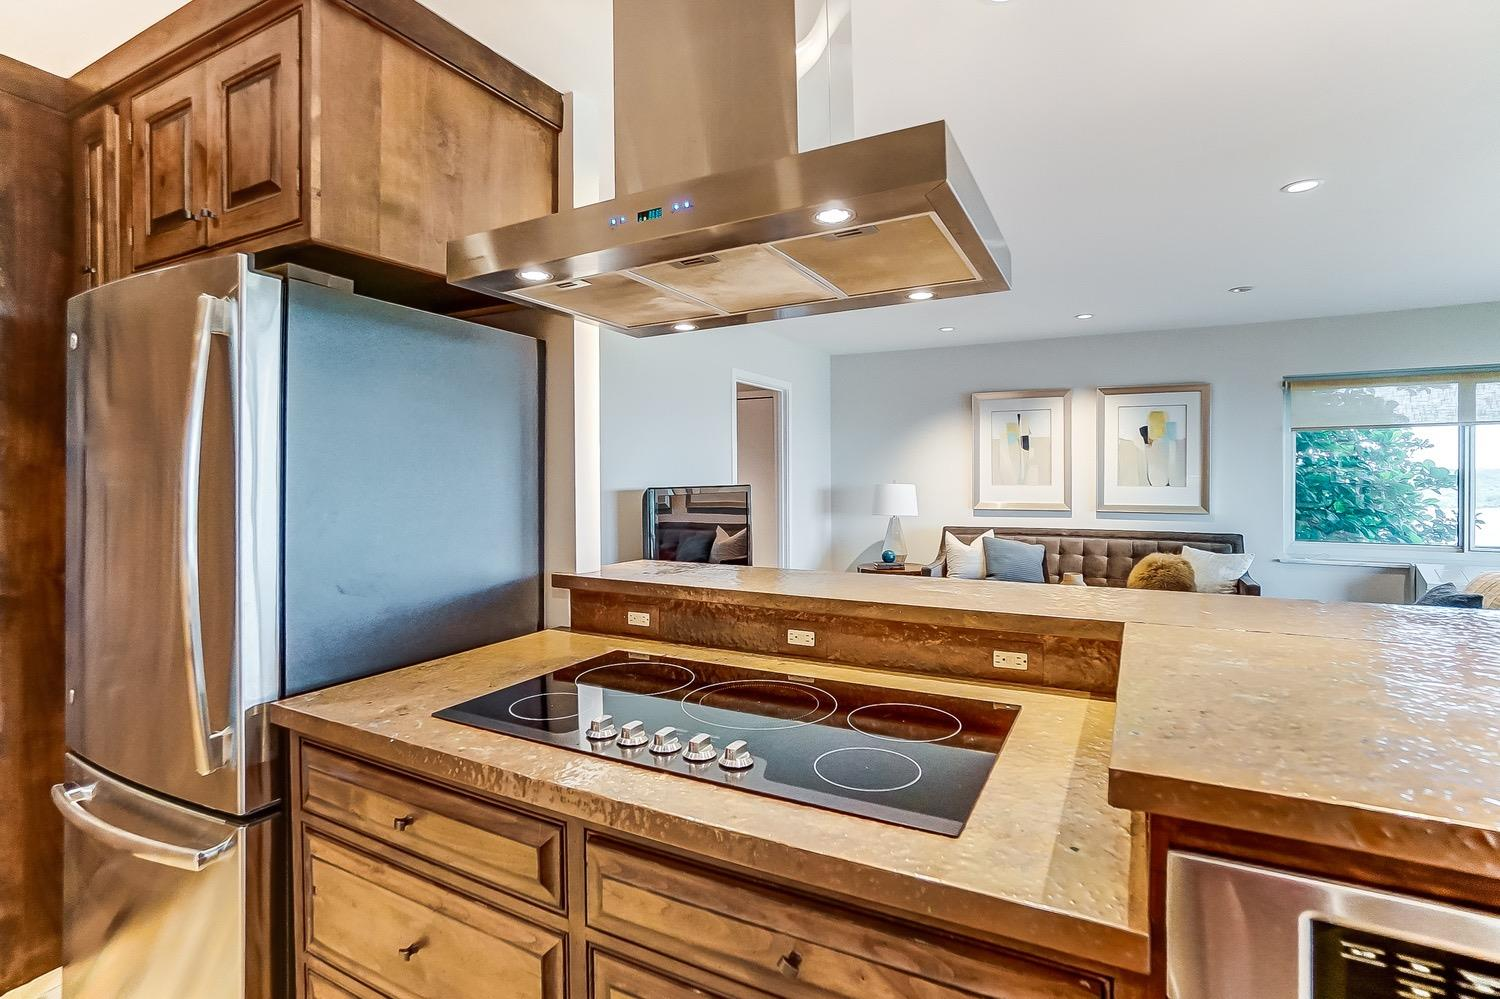 Solid surface cooktop, stainless refrigerator and exhaust fan.